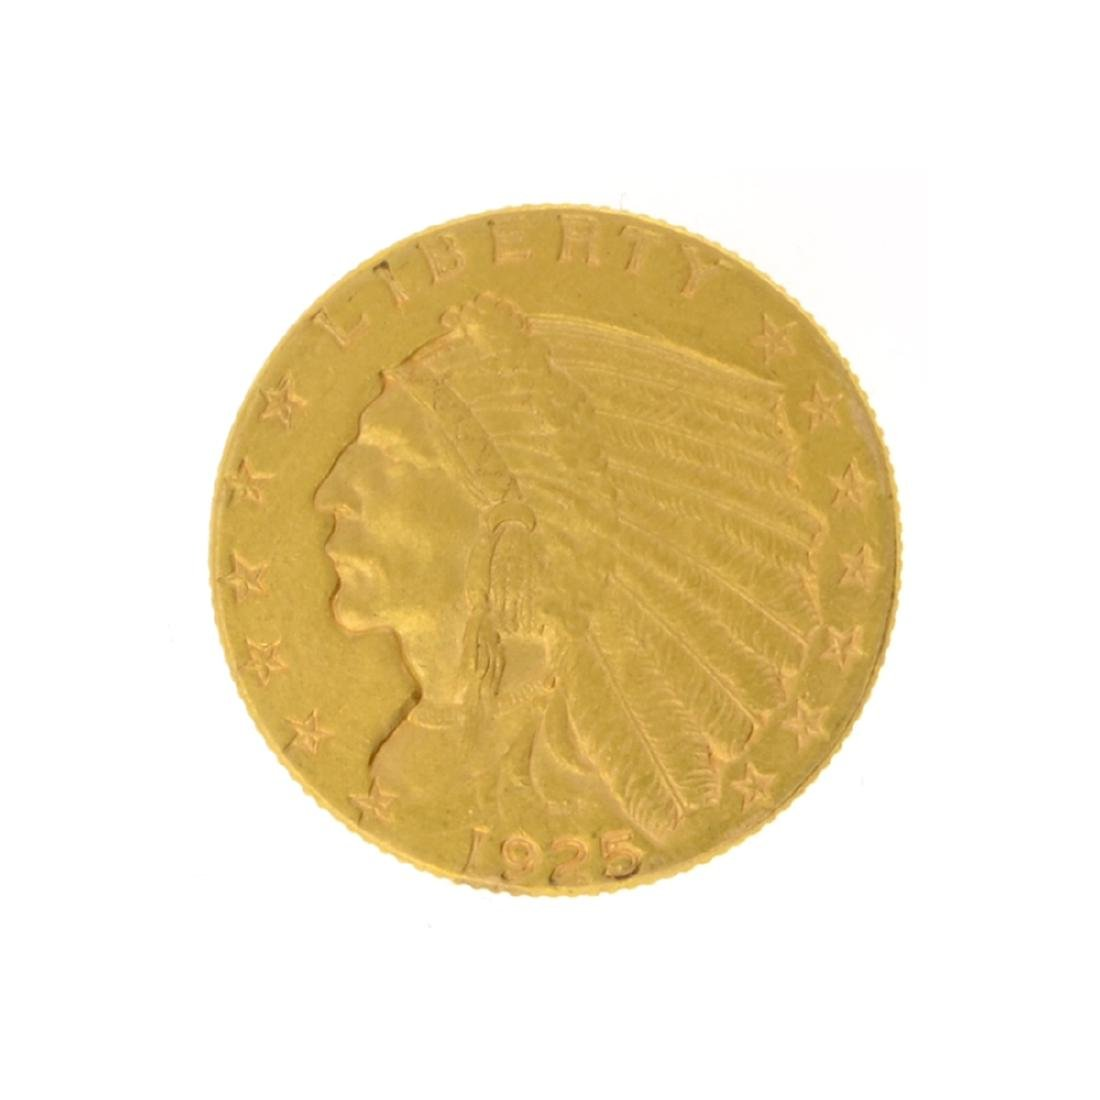 1925-D $2.50 Indian Head Gold Coin